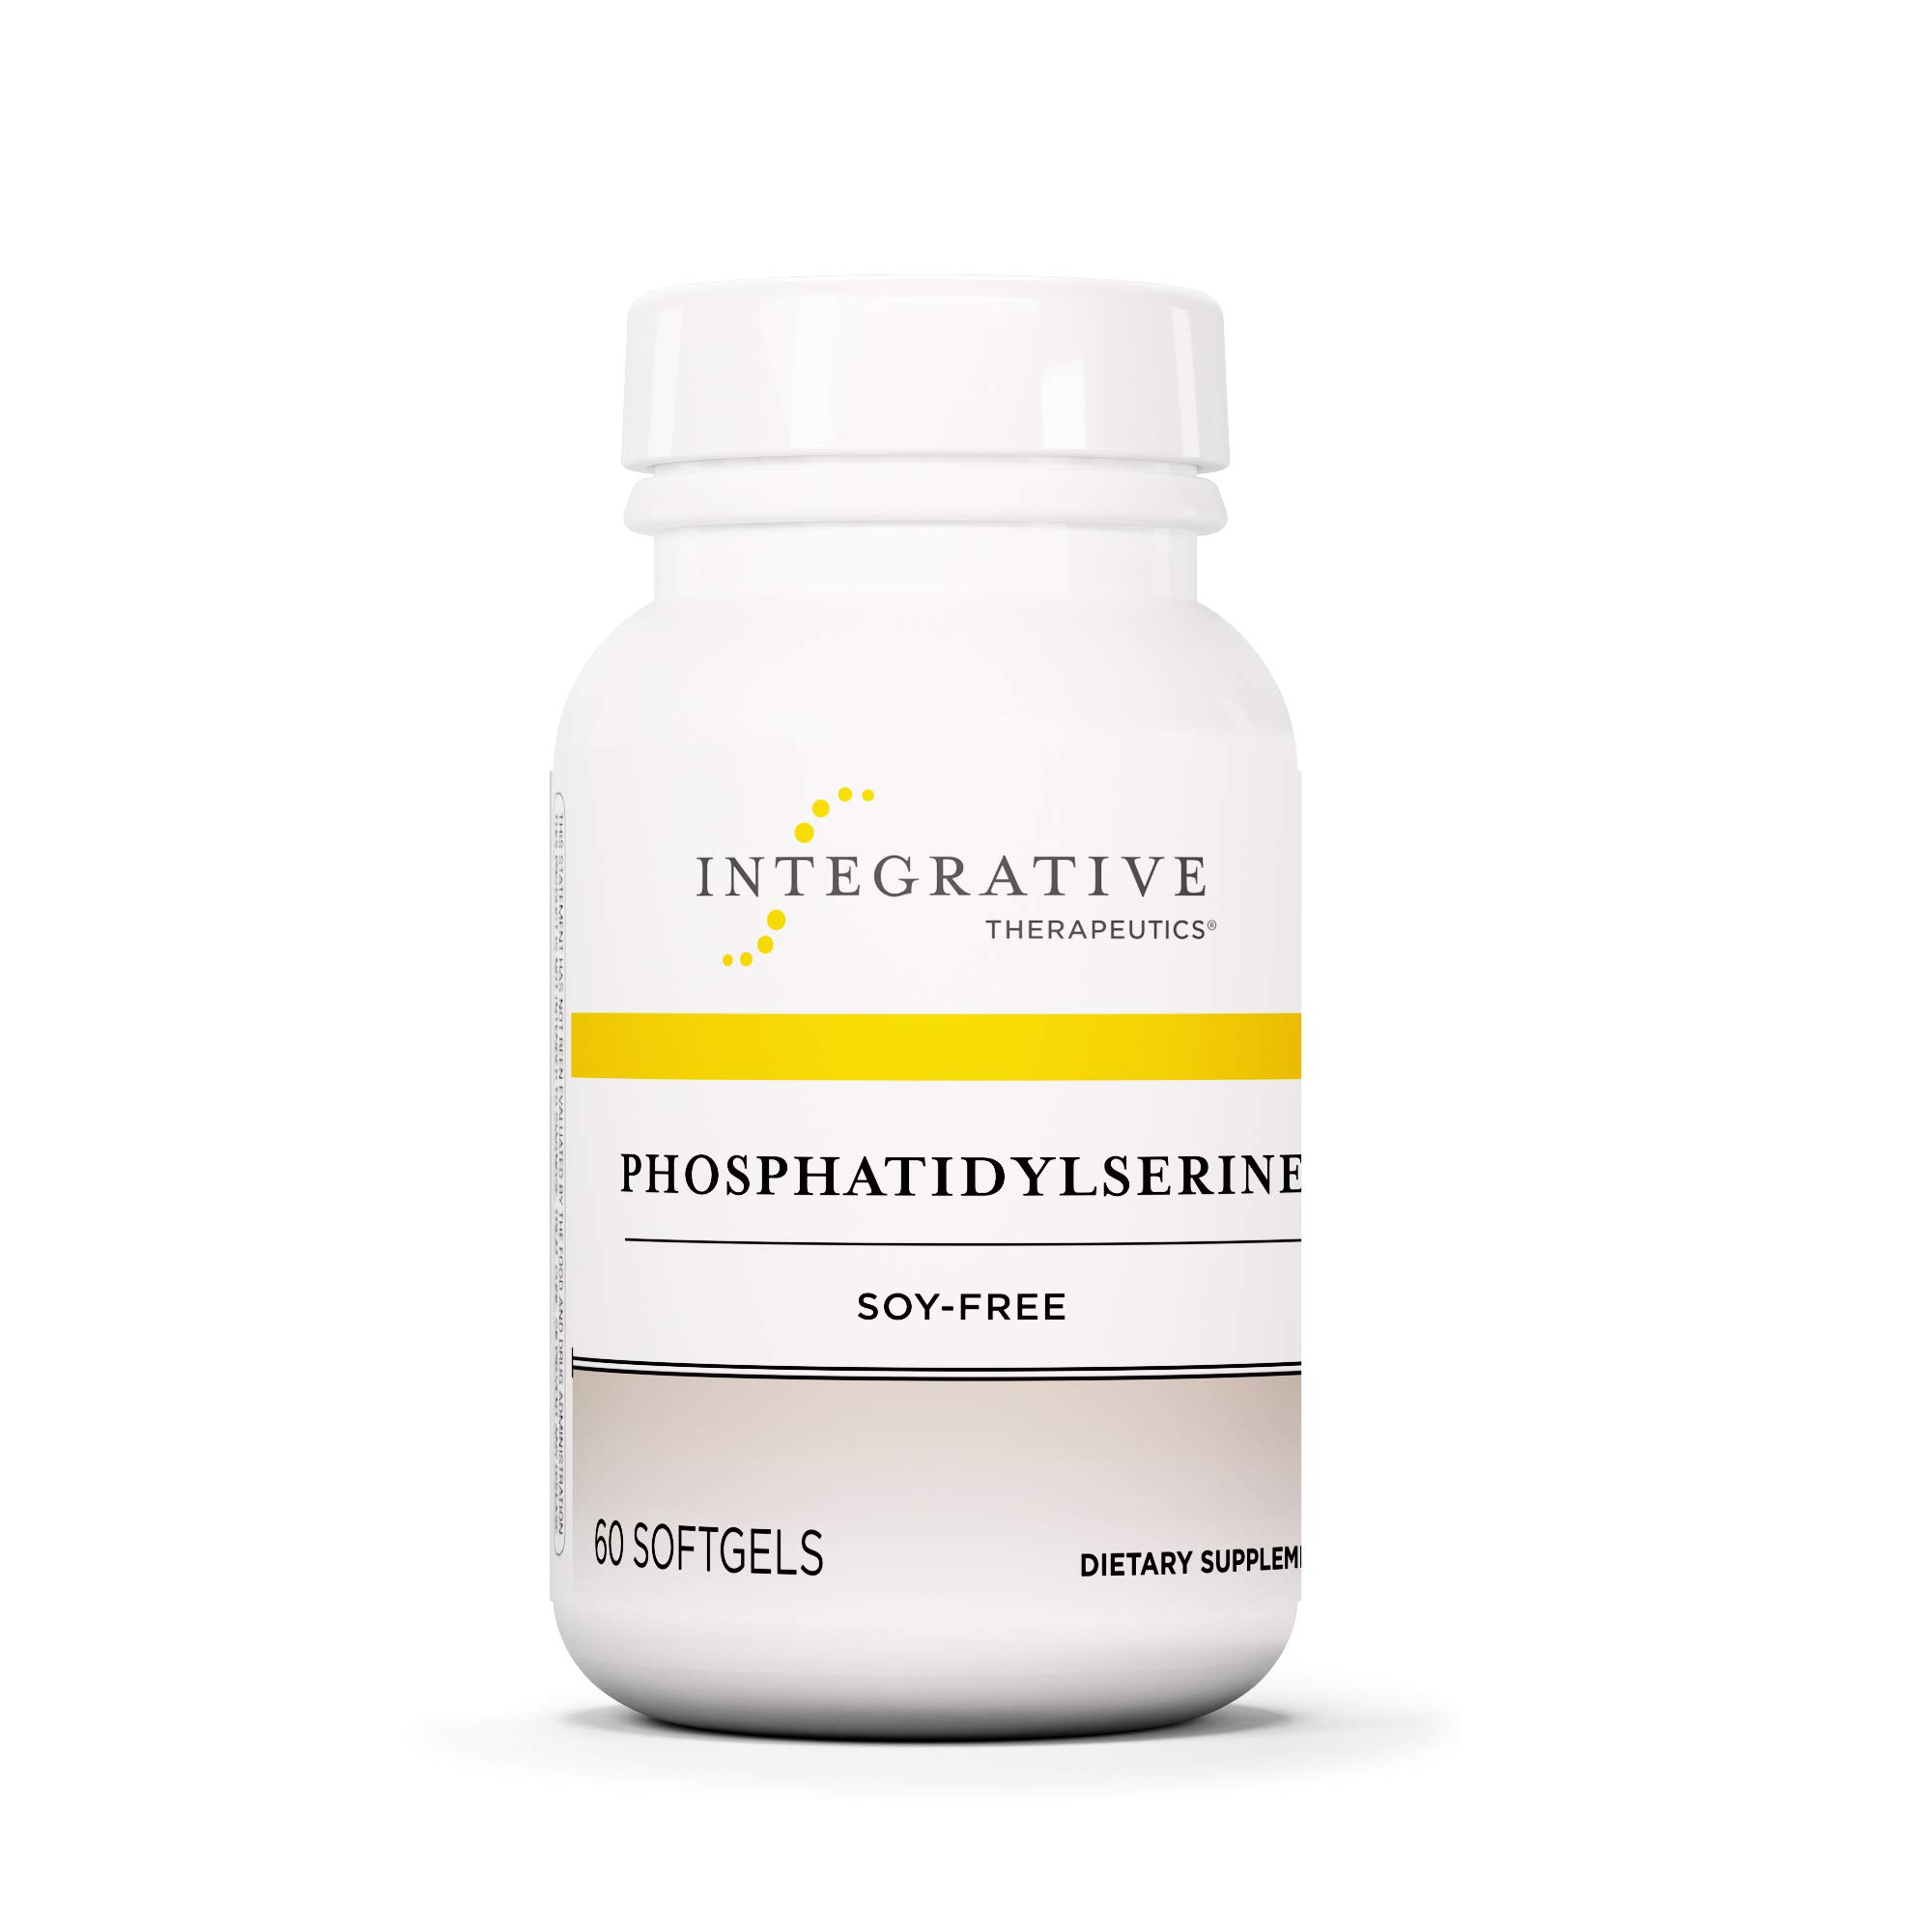 Integrative Therapeutics - Phosphatidylserine - Soy-Free - Promotes Cognitive Function and Mental Sharpness - 60 Softgels